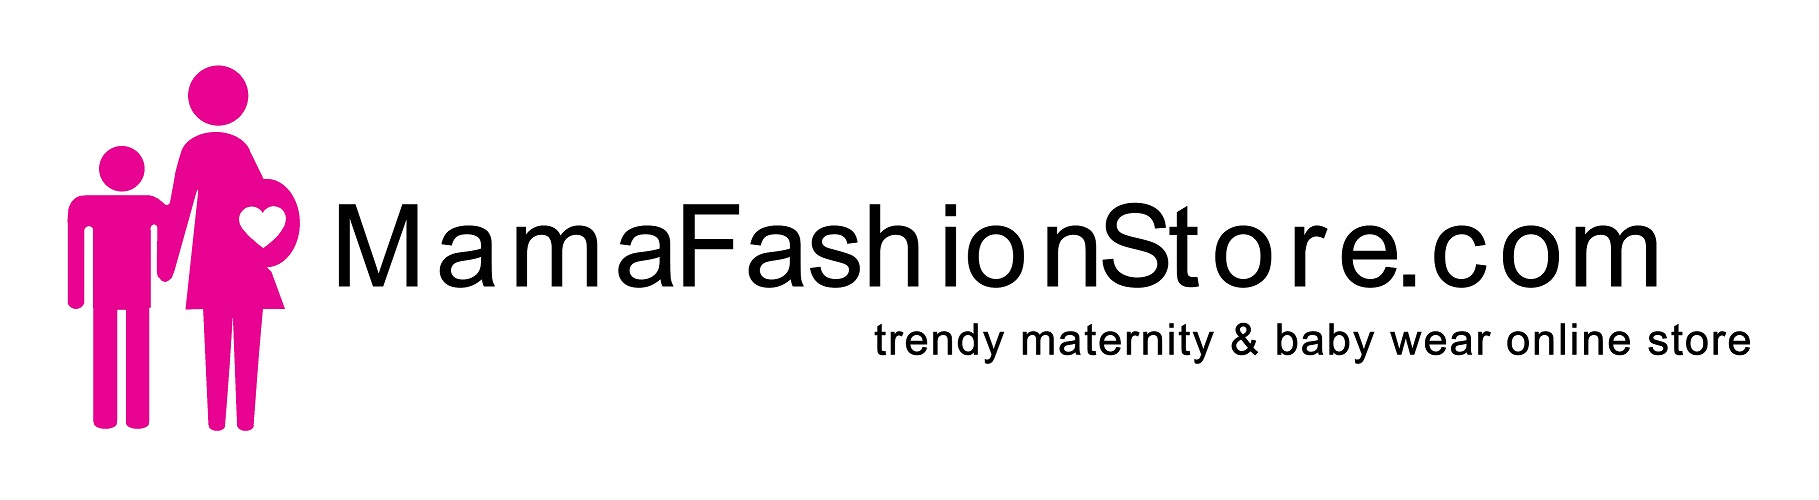 Online Maternity Clothes Shopping